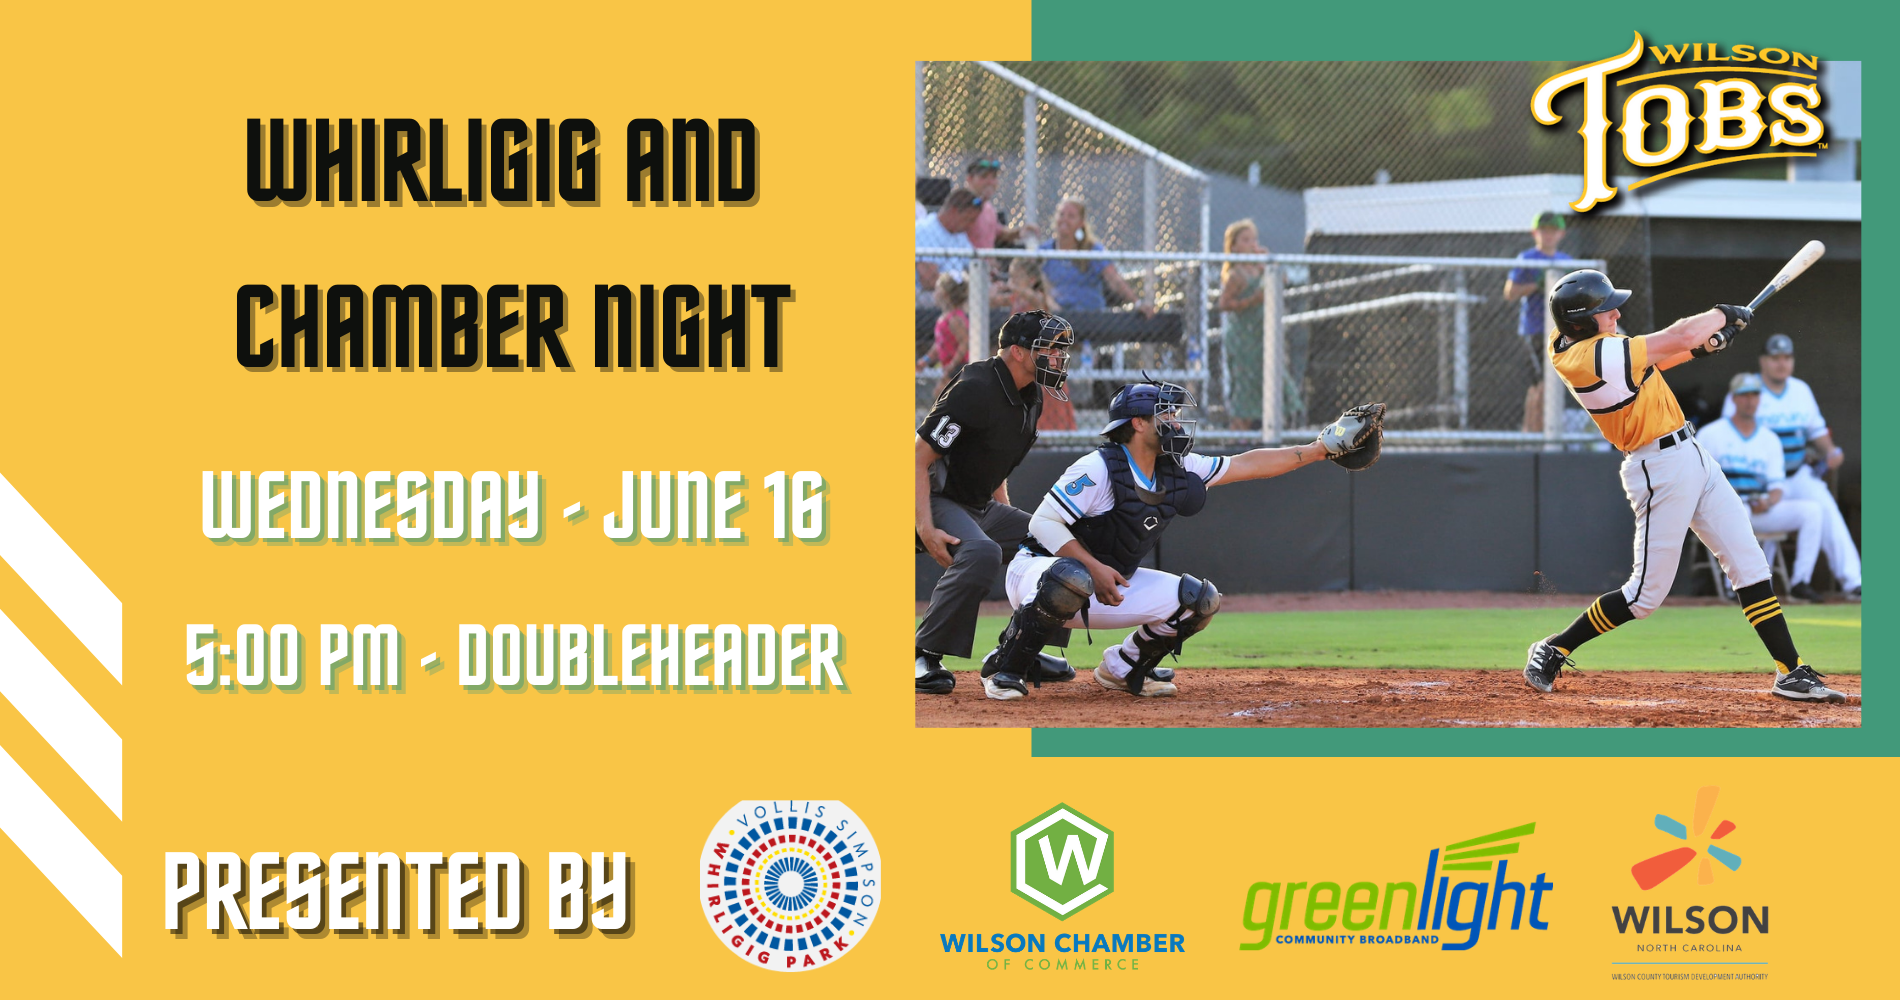 Tobs Play Two Today (Wednesday) on Wilson Chamber and Whirligig Night